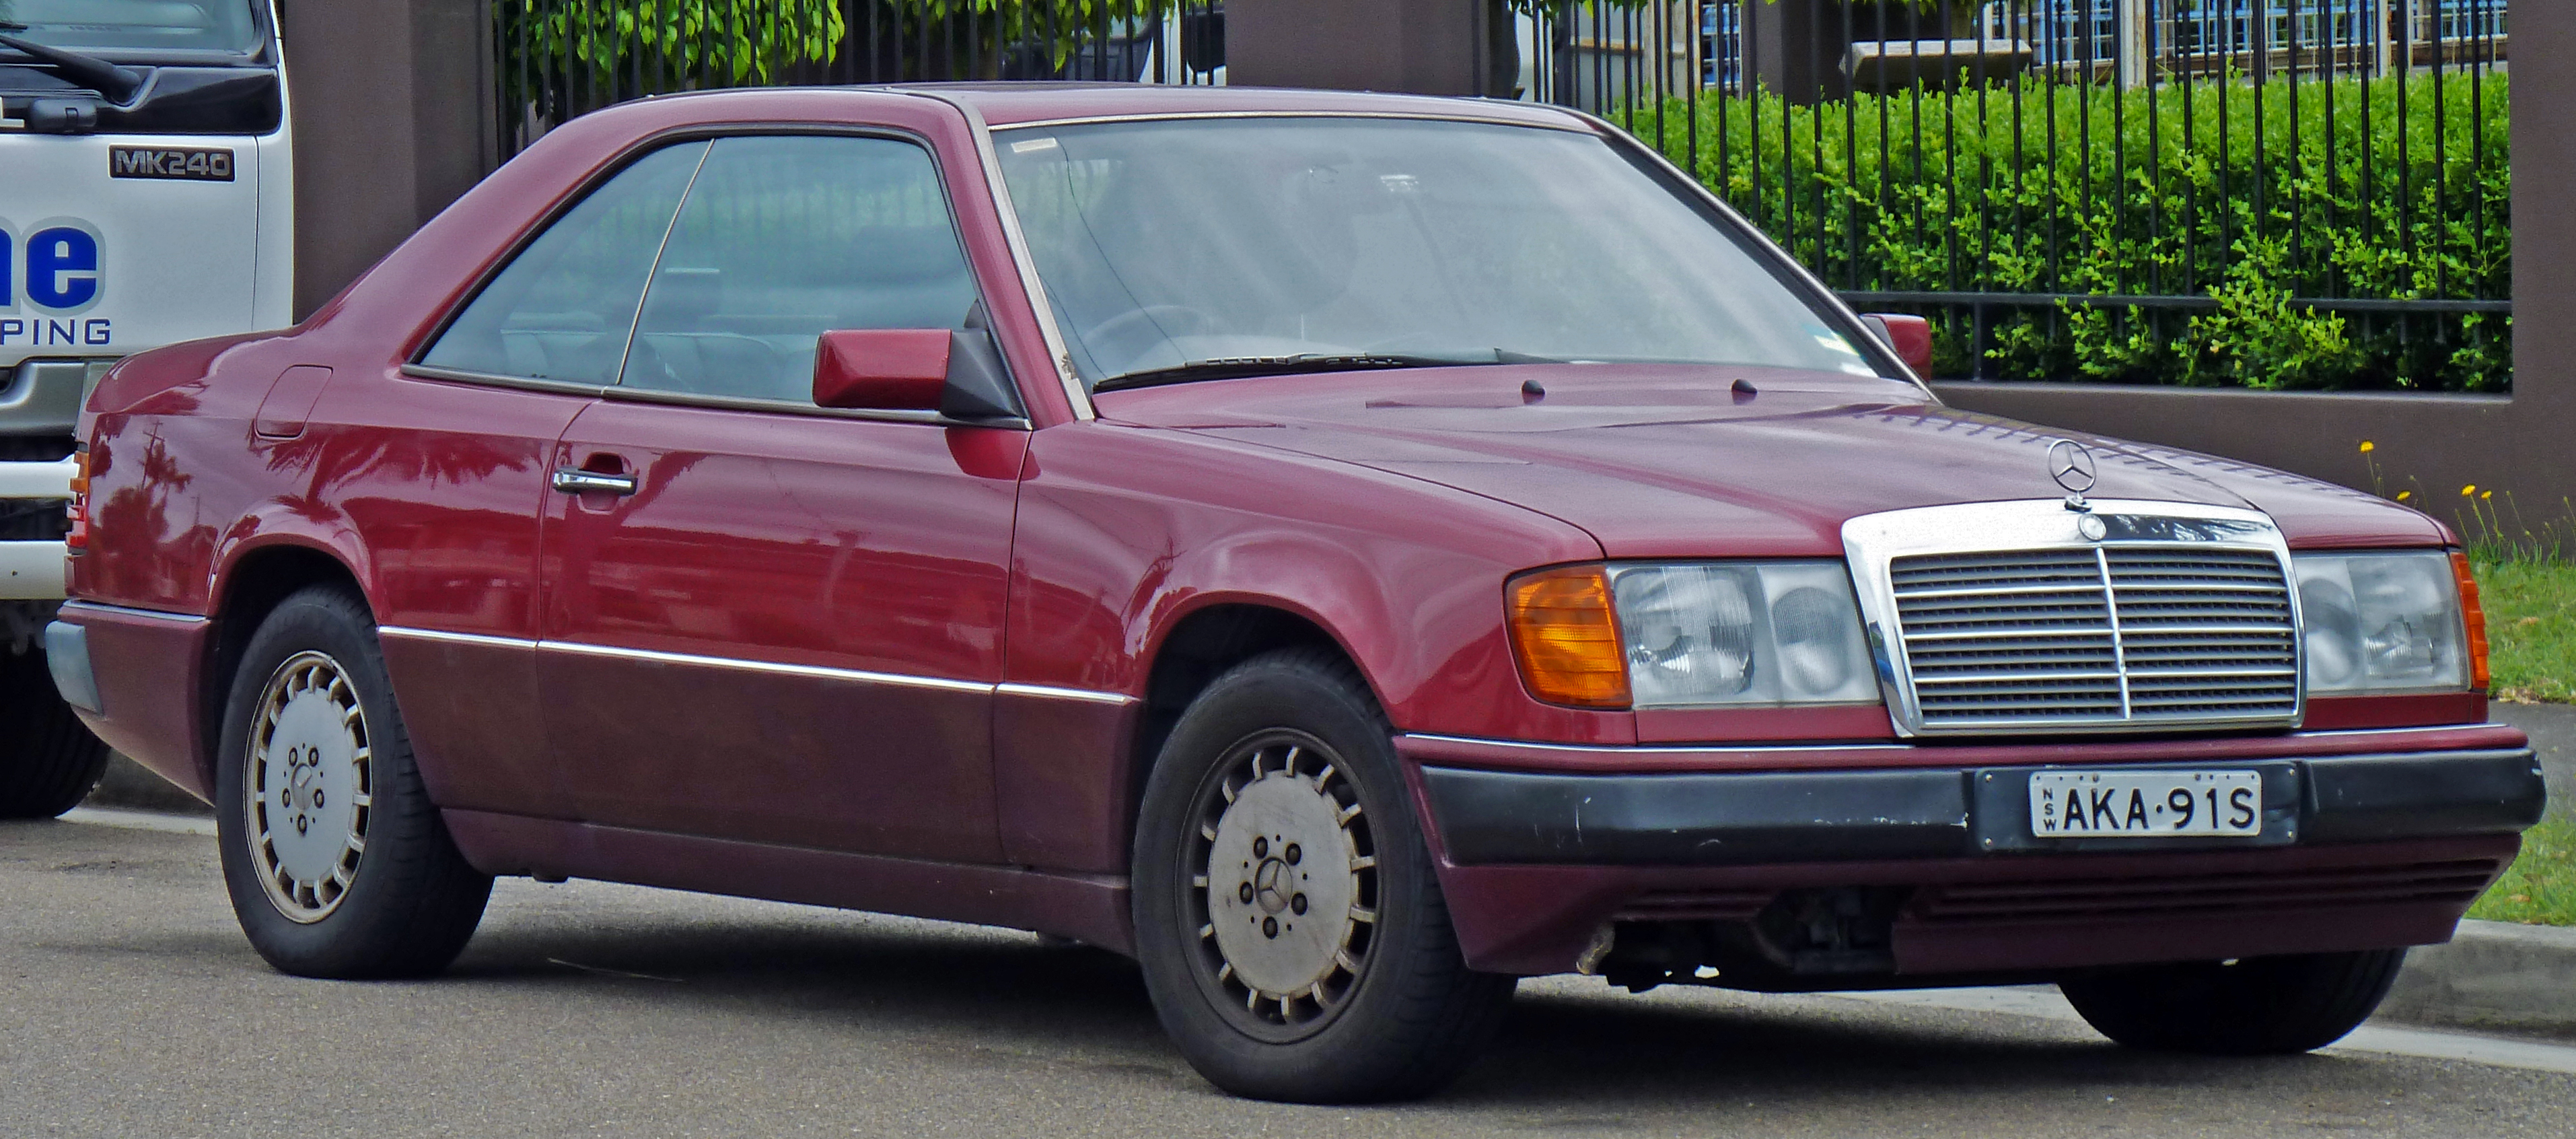 Cars mercedes w124 coupe 1990